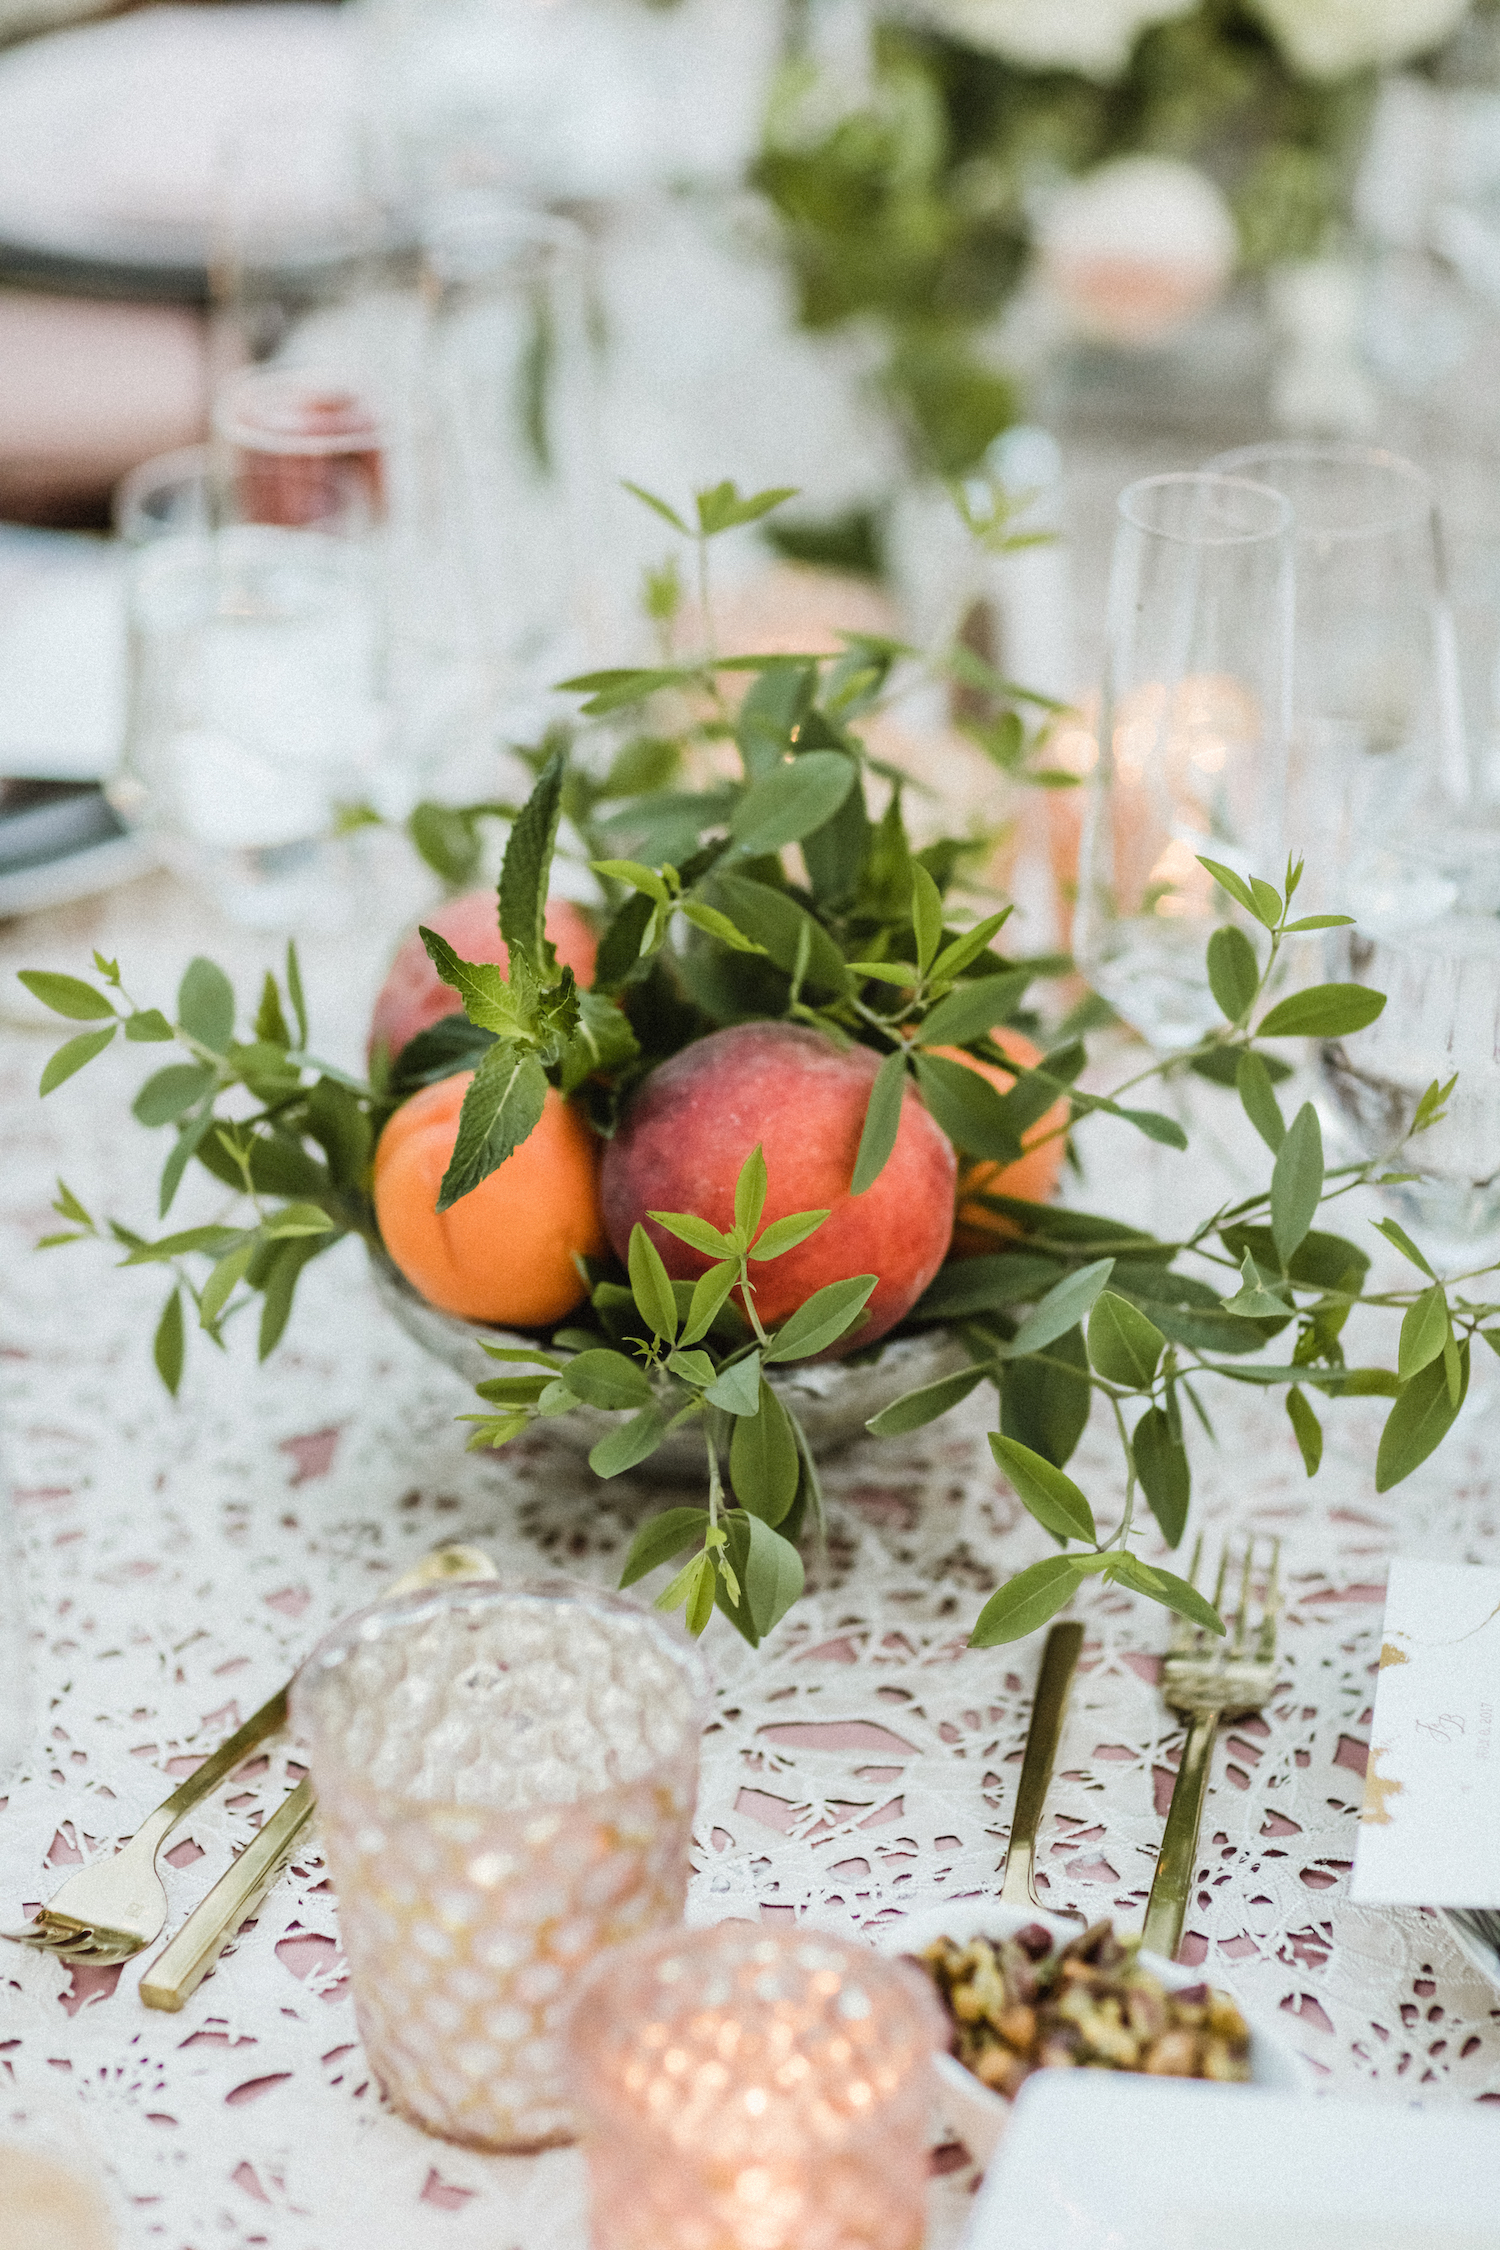 Julianne Hough and Brooks Laich Wedding - Wild Bloom Floral - Sarah Falugo Photography - Simply Troy Event Design 11.jpeg